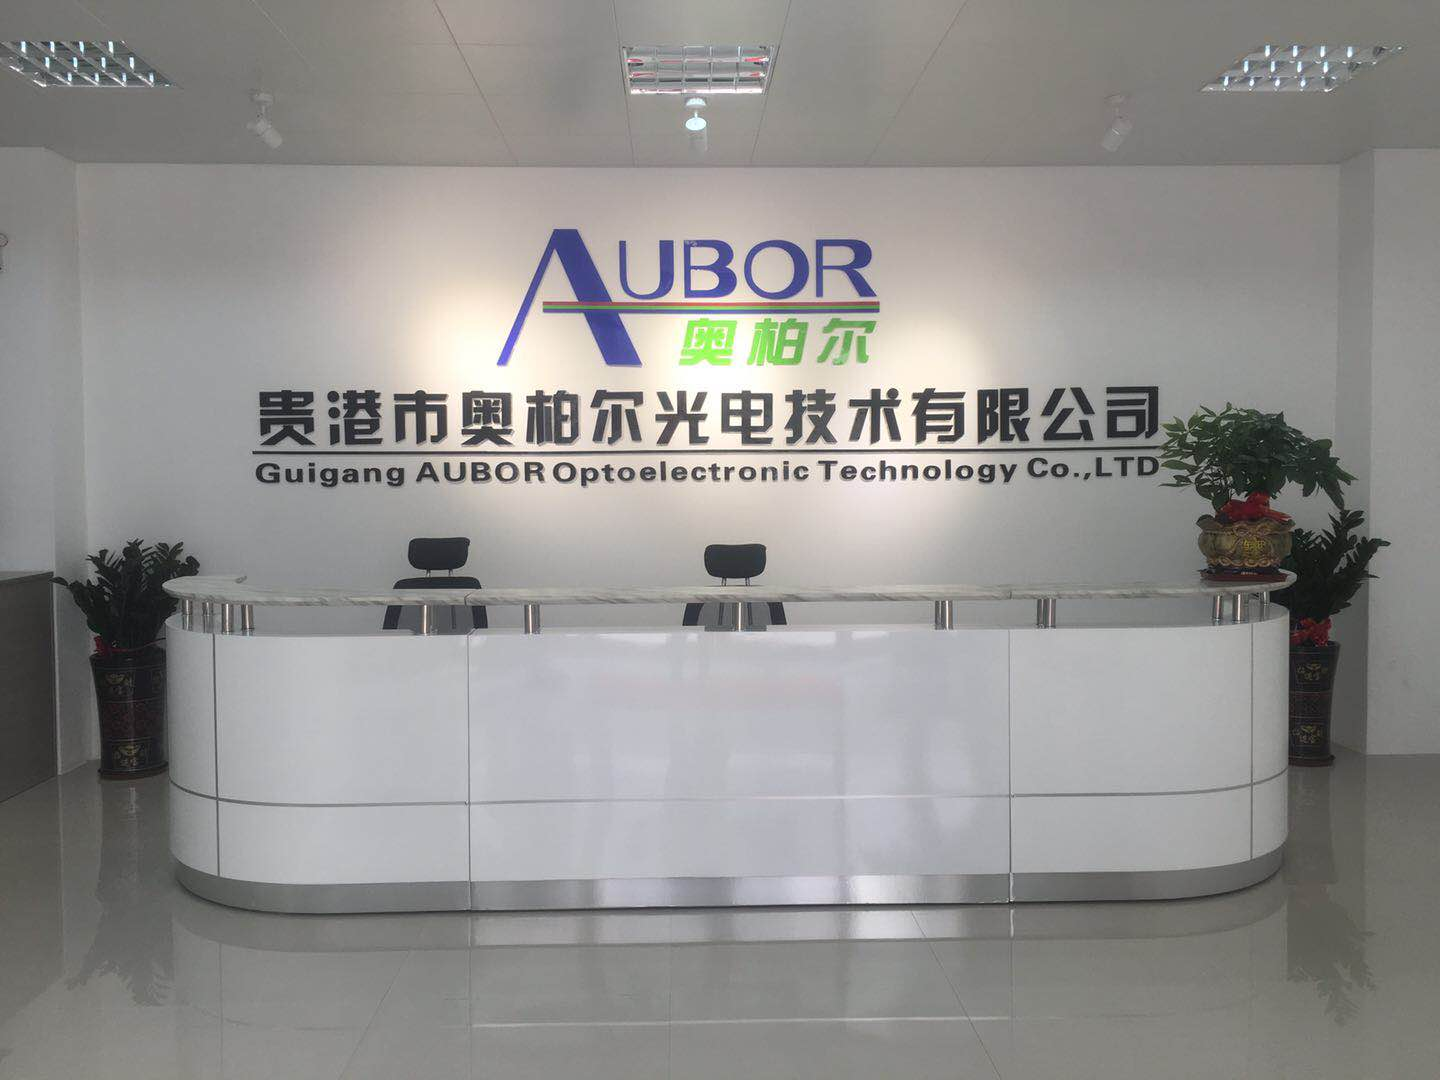 Guangxi Guigang Aubor Optoelectronic Technology Co., Ltd.